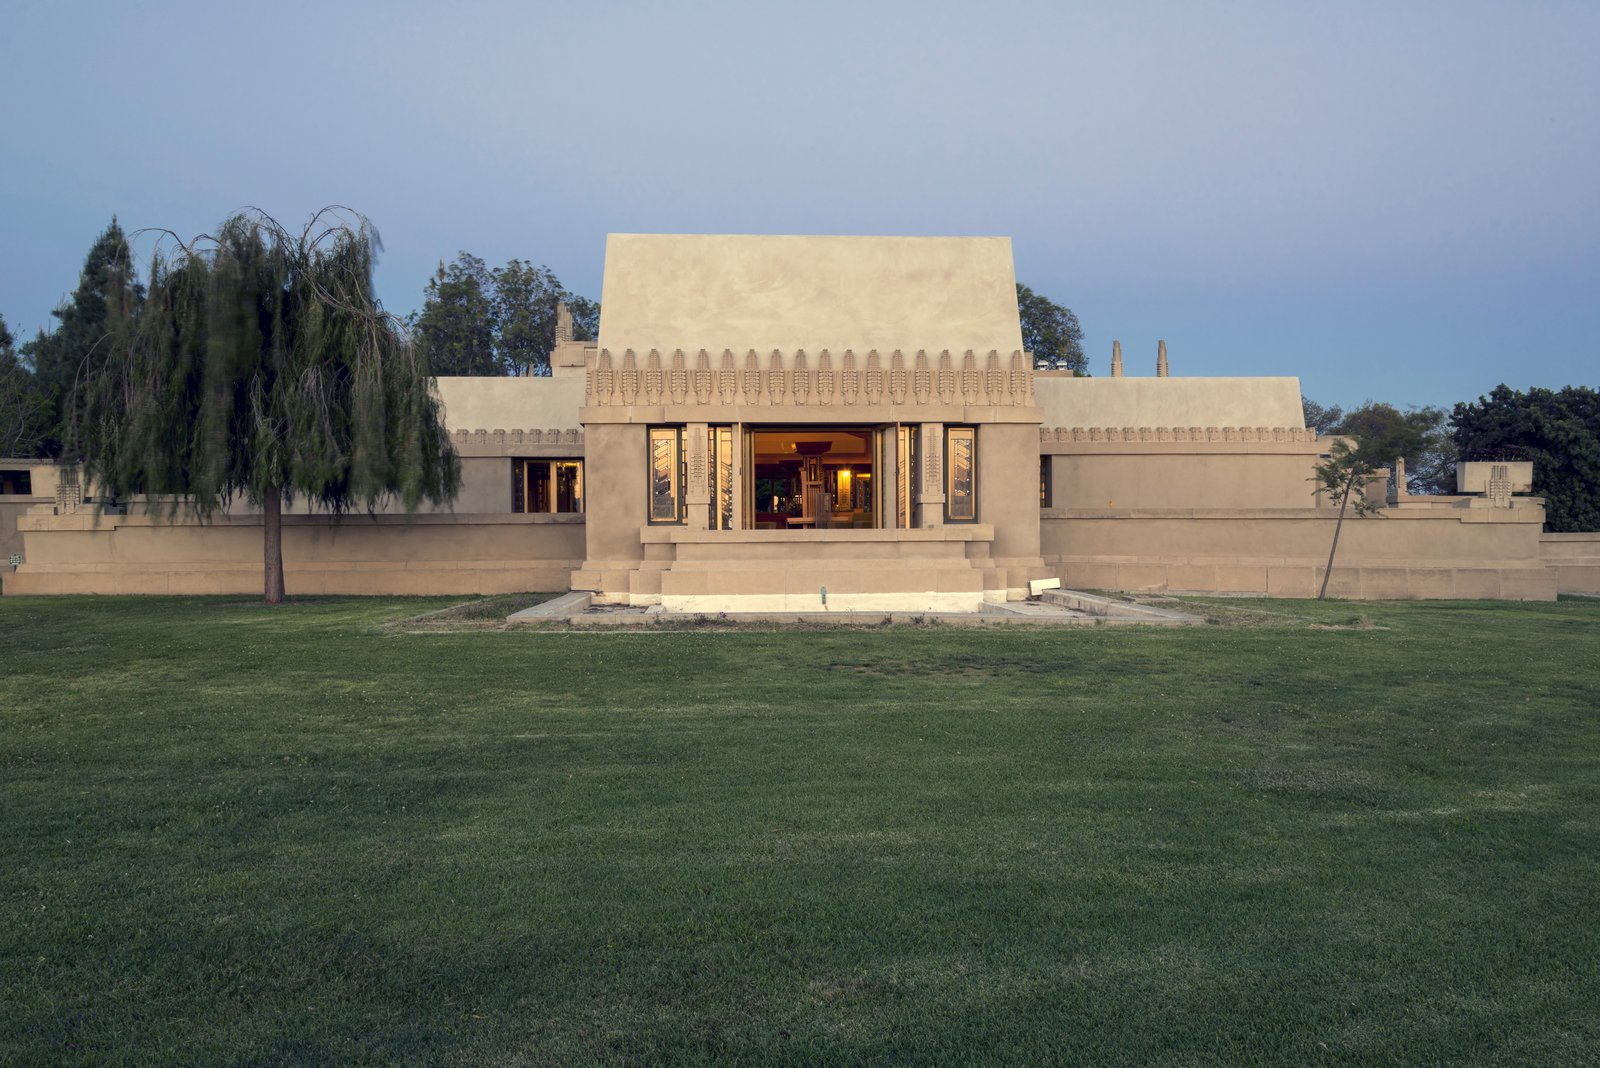 Hollyhock House (1918, Los Angeles, California). This residence, the architect's first commission in Southern California, revolves around a central patio and contains multiple rooftop terraces.